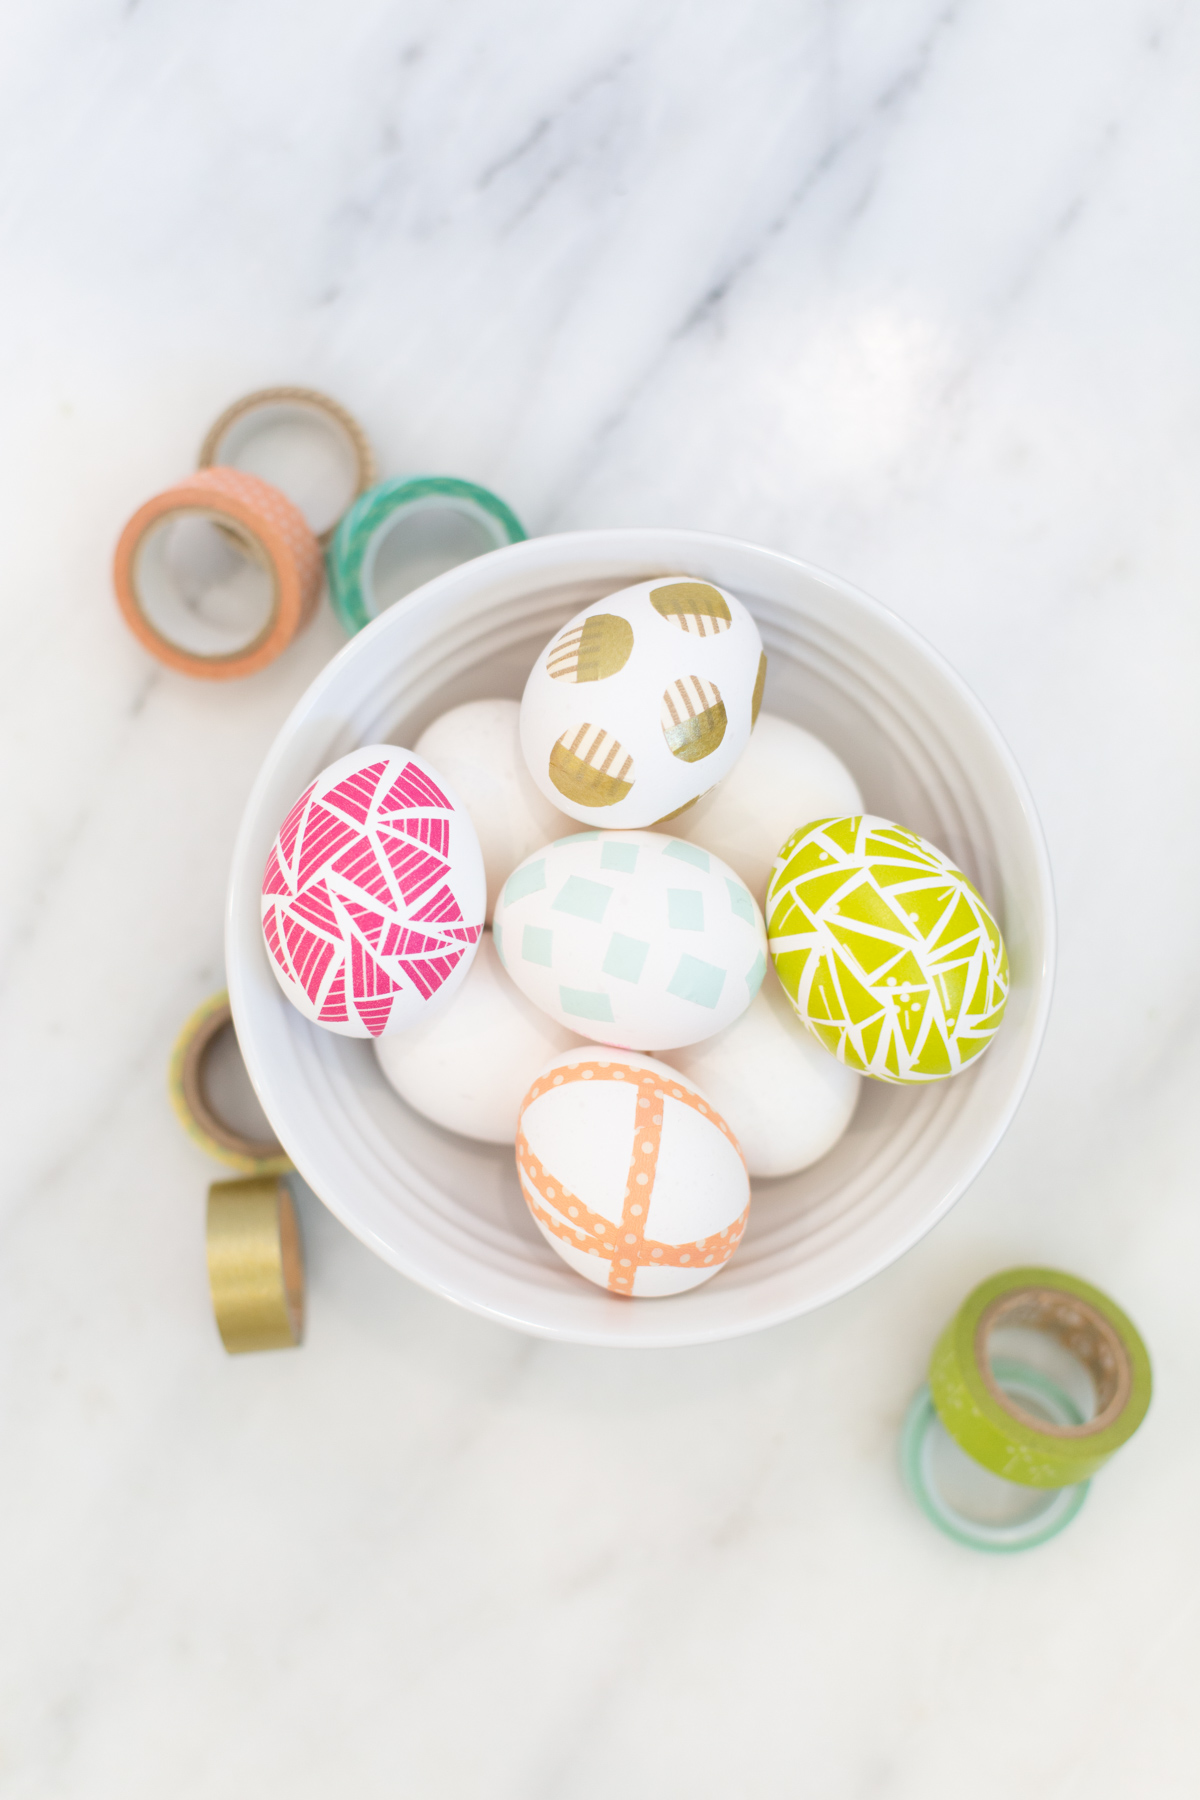 Four No Dye Ideas To Decorate Easter Eggs With Washi Tape